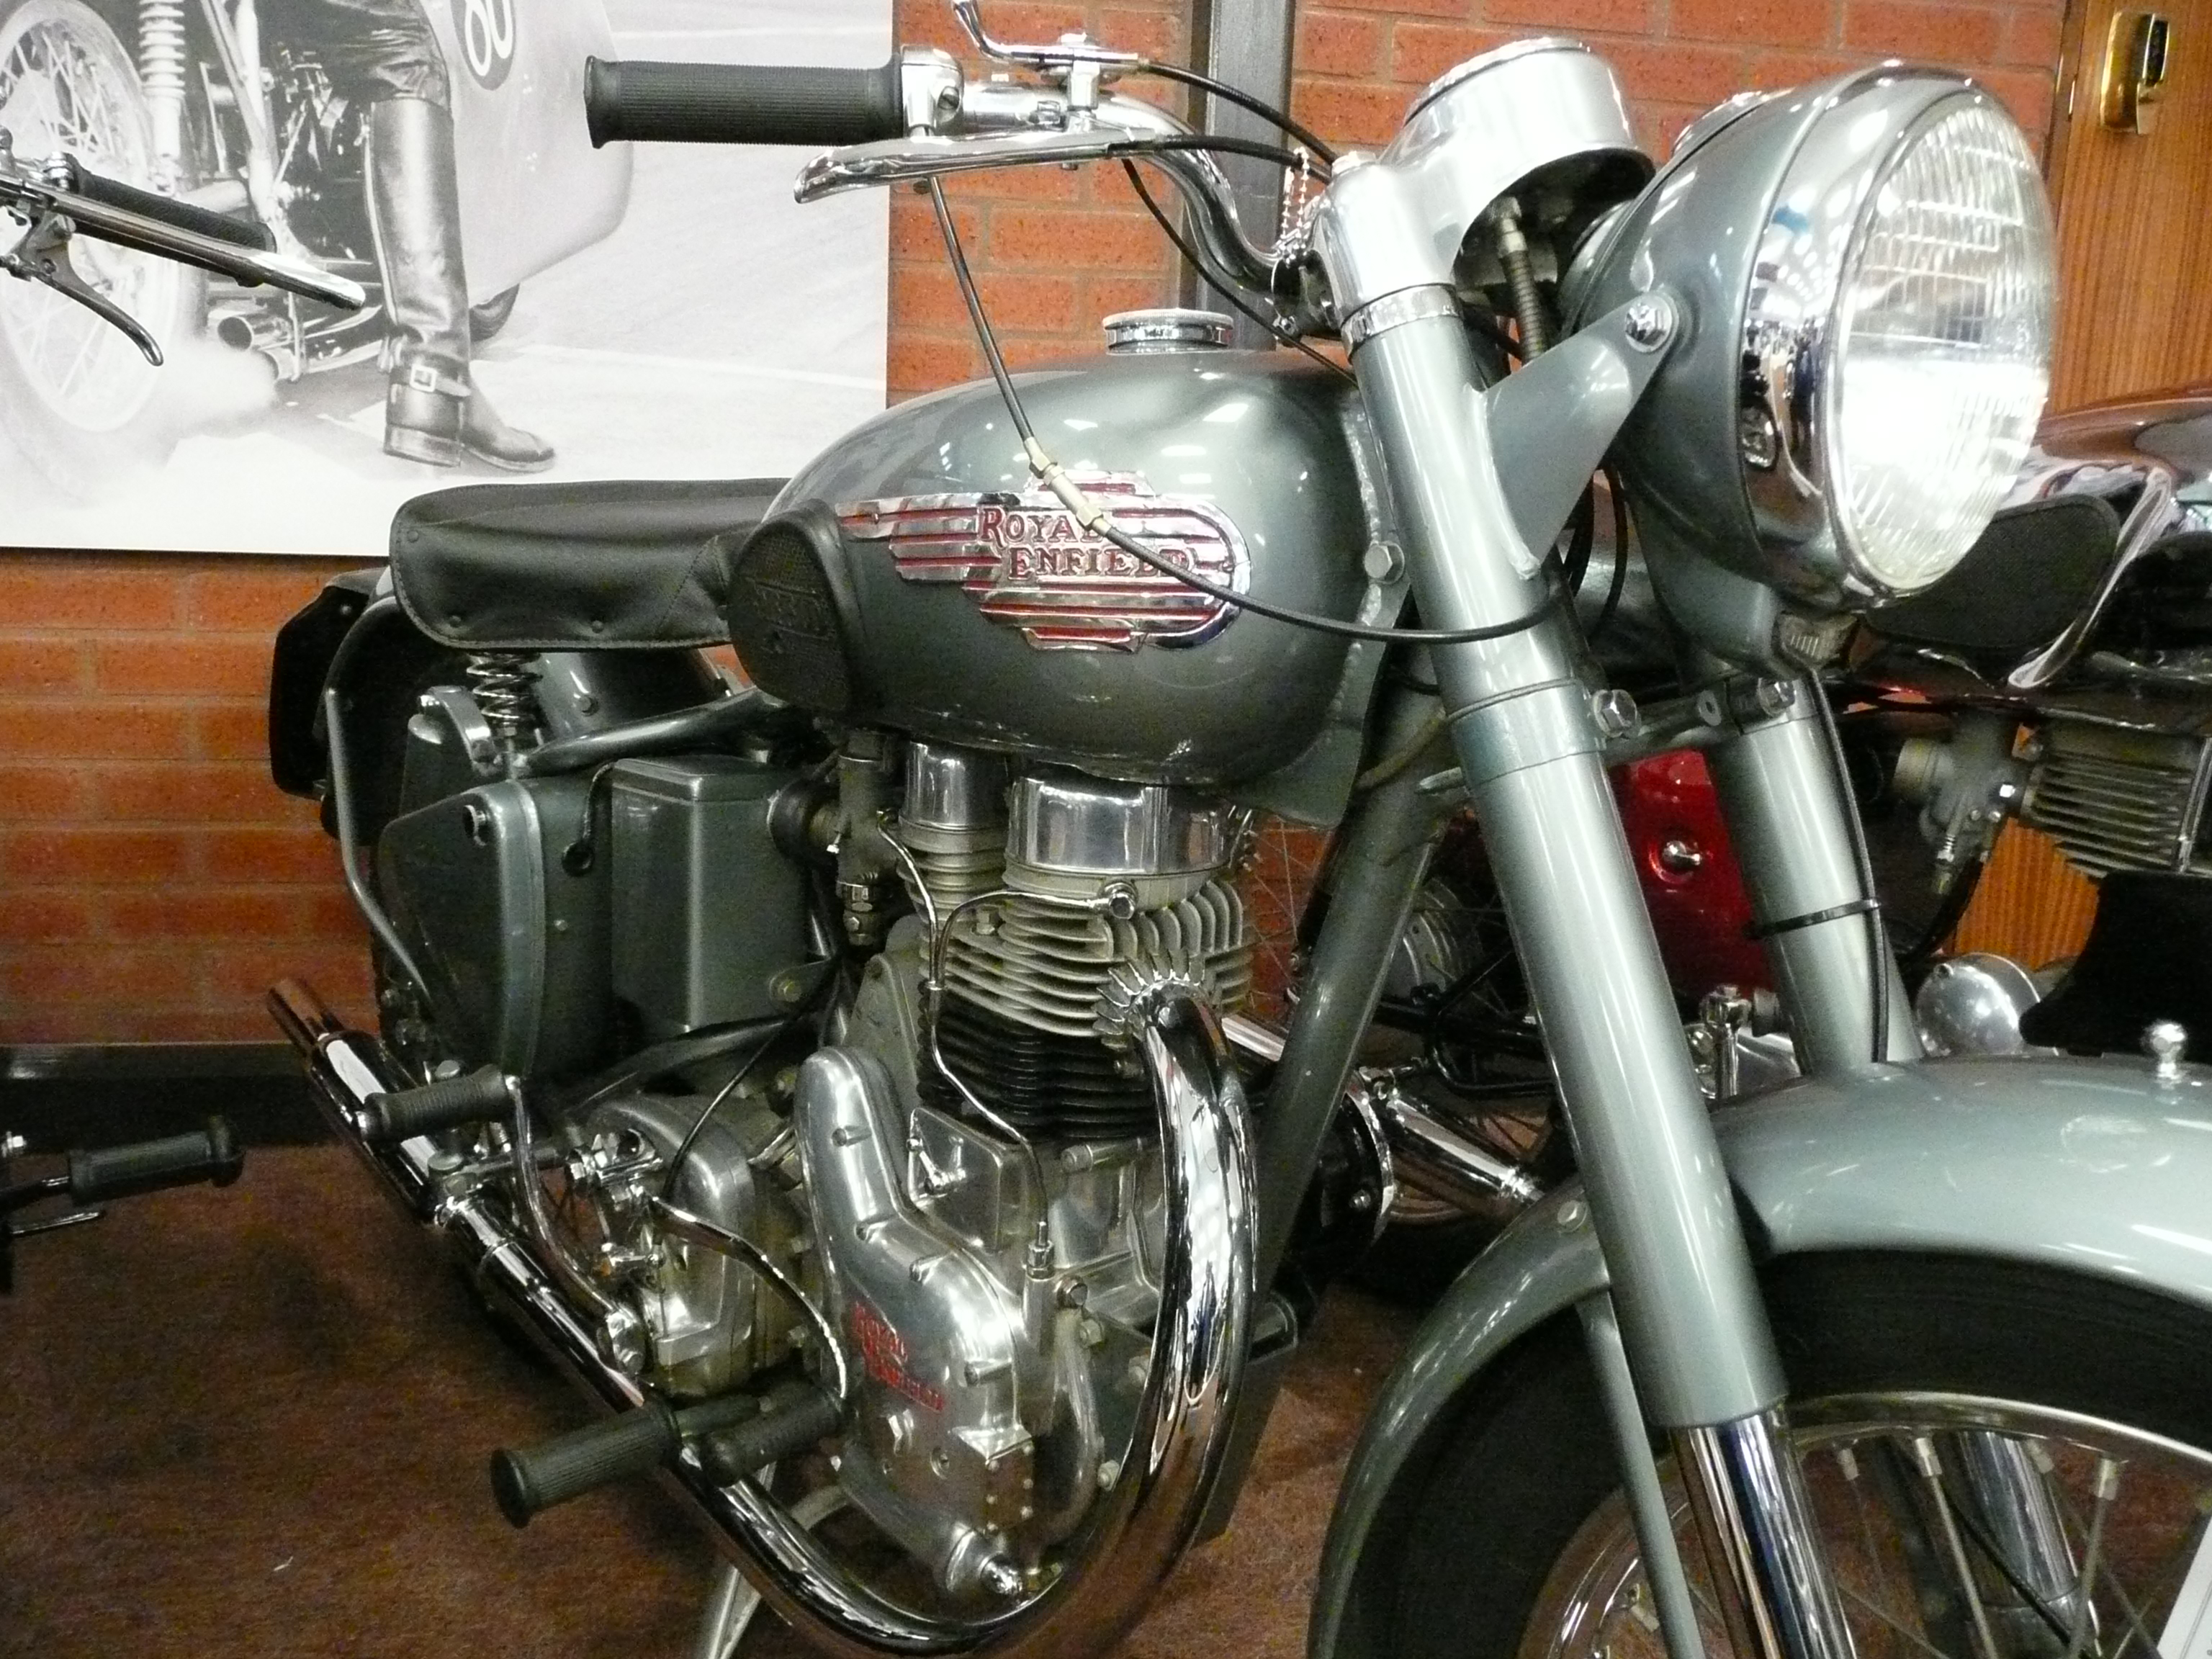 Royal Enfield Bullet 350 Army 1997 images #122769